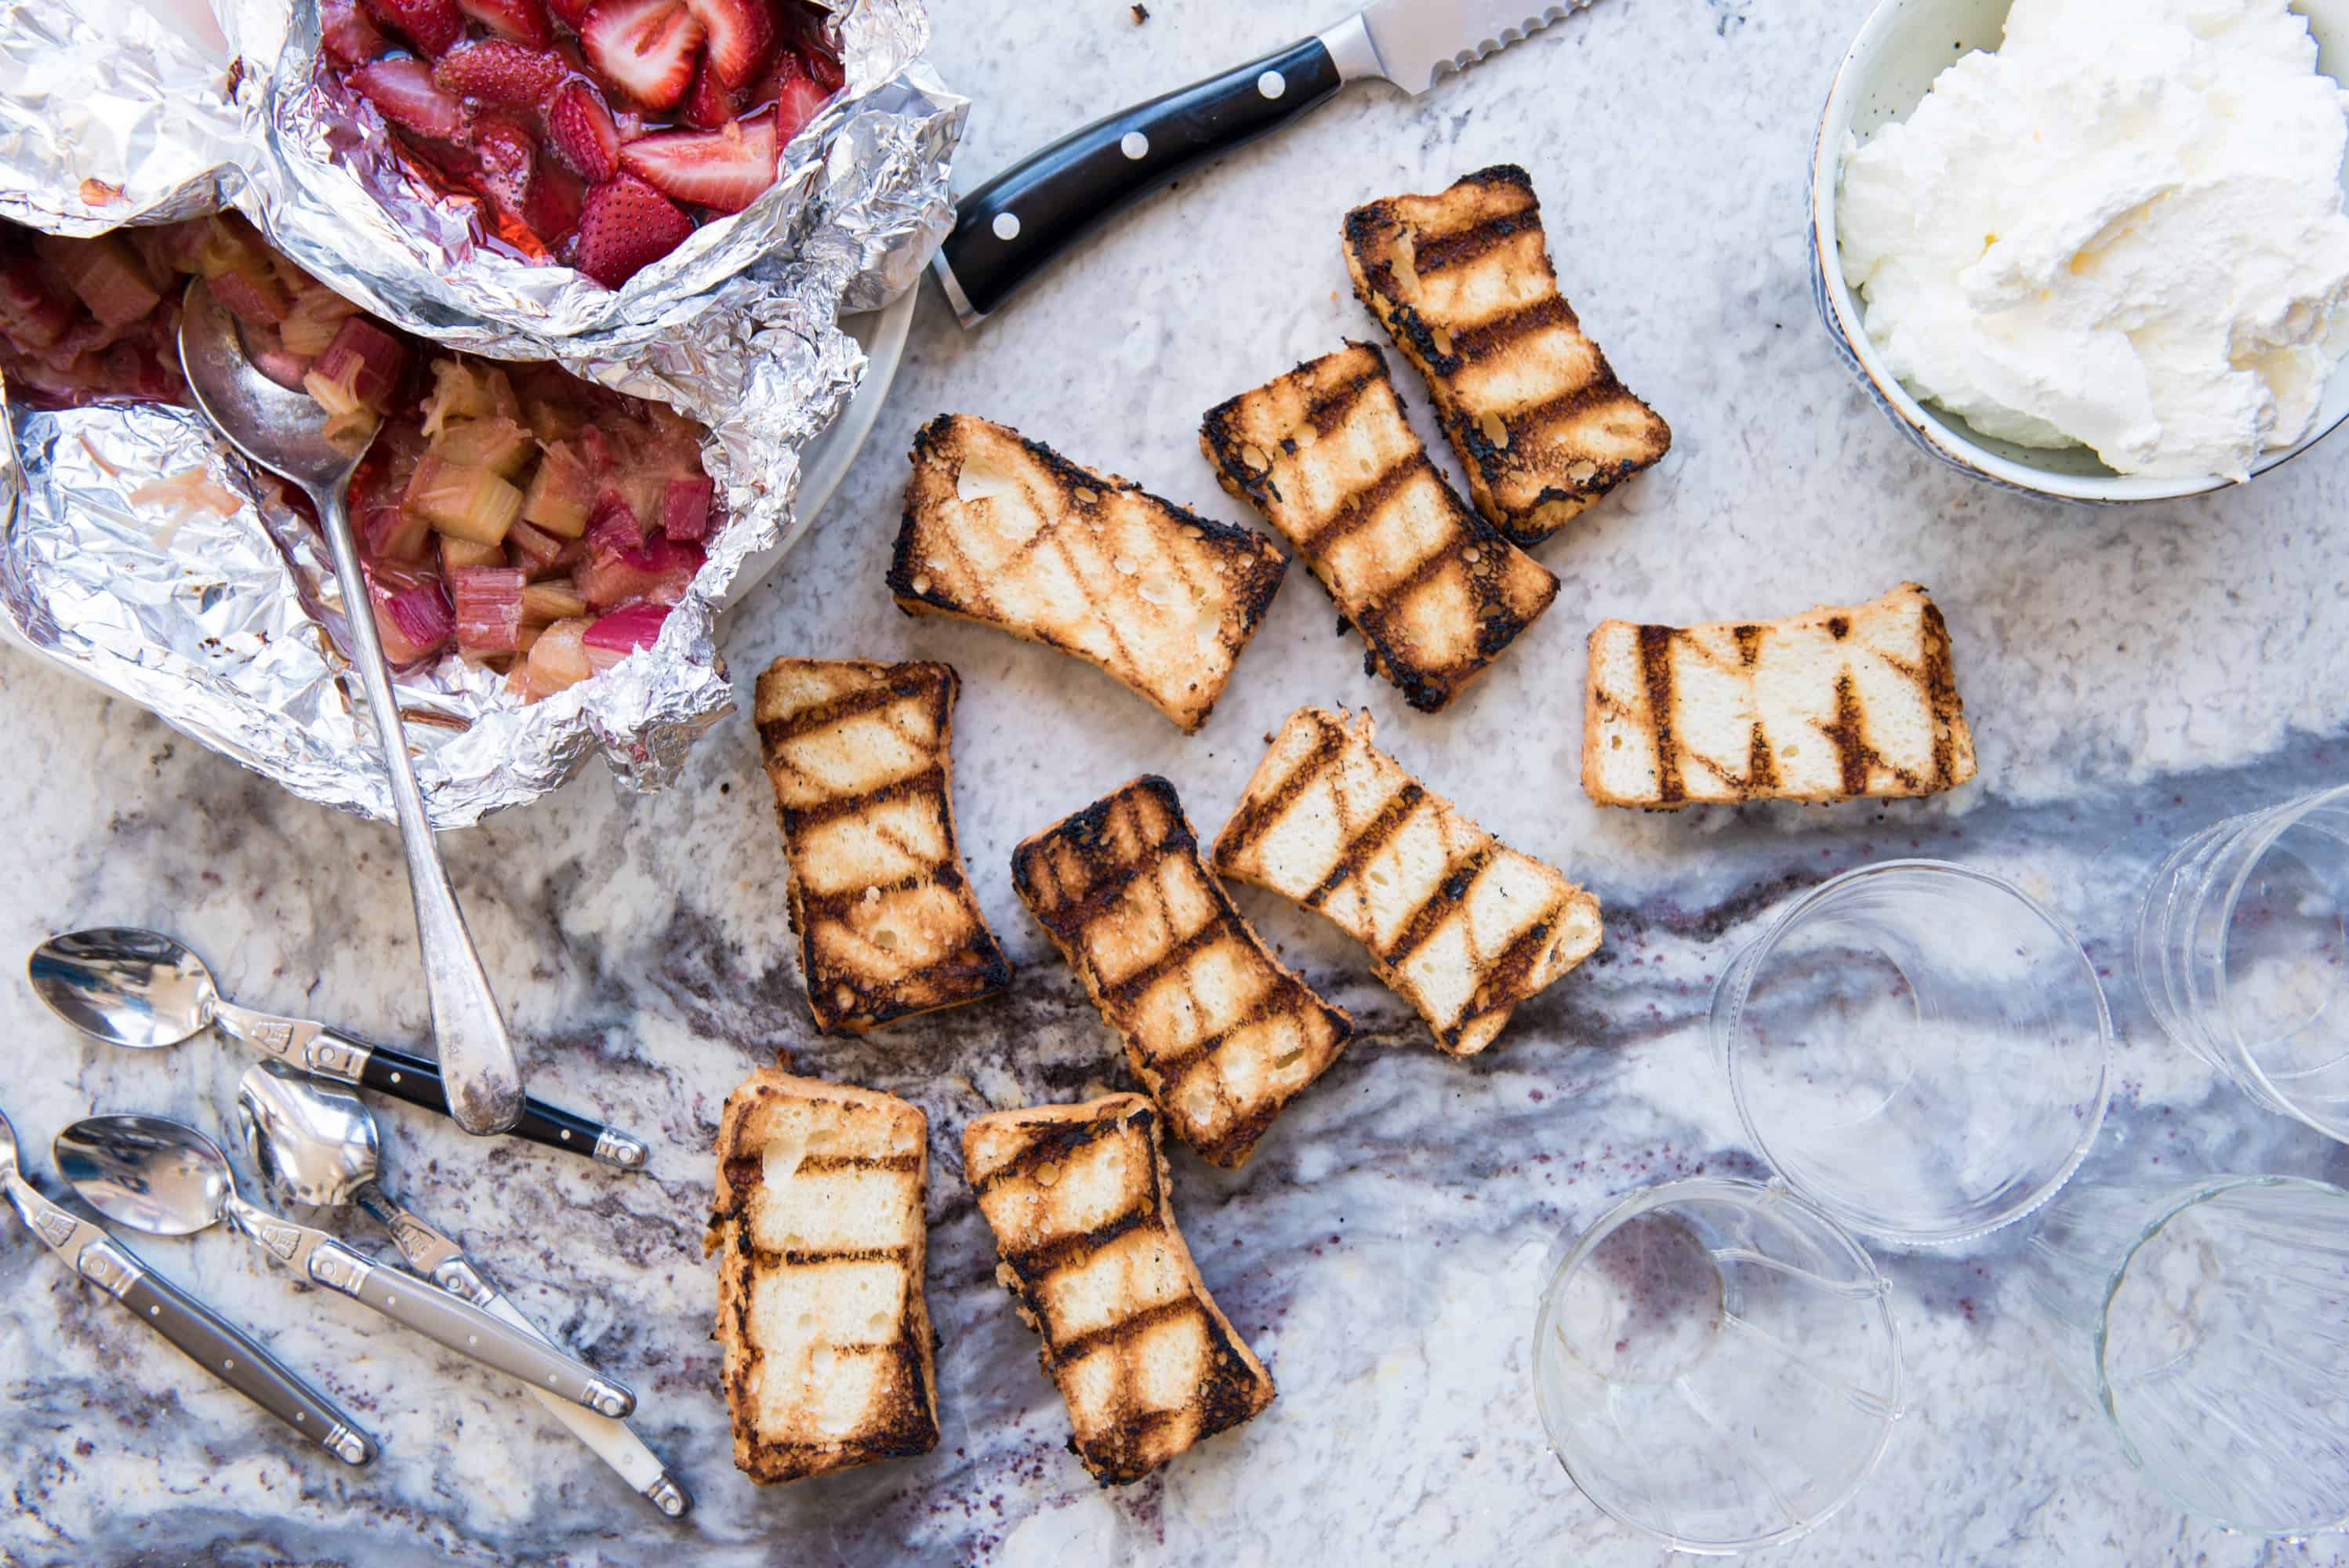 overhead shot of slices of grilled angel food cake, a bowl of whipped cream in the upper right corner and two foil packets filled with grilled strawberries and grilled rhubarb in the top left corner. Spoons and empty glasses on the side.